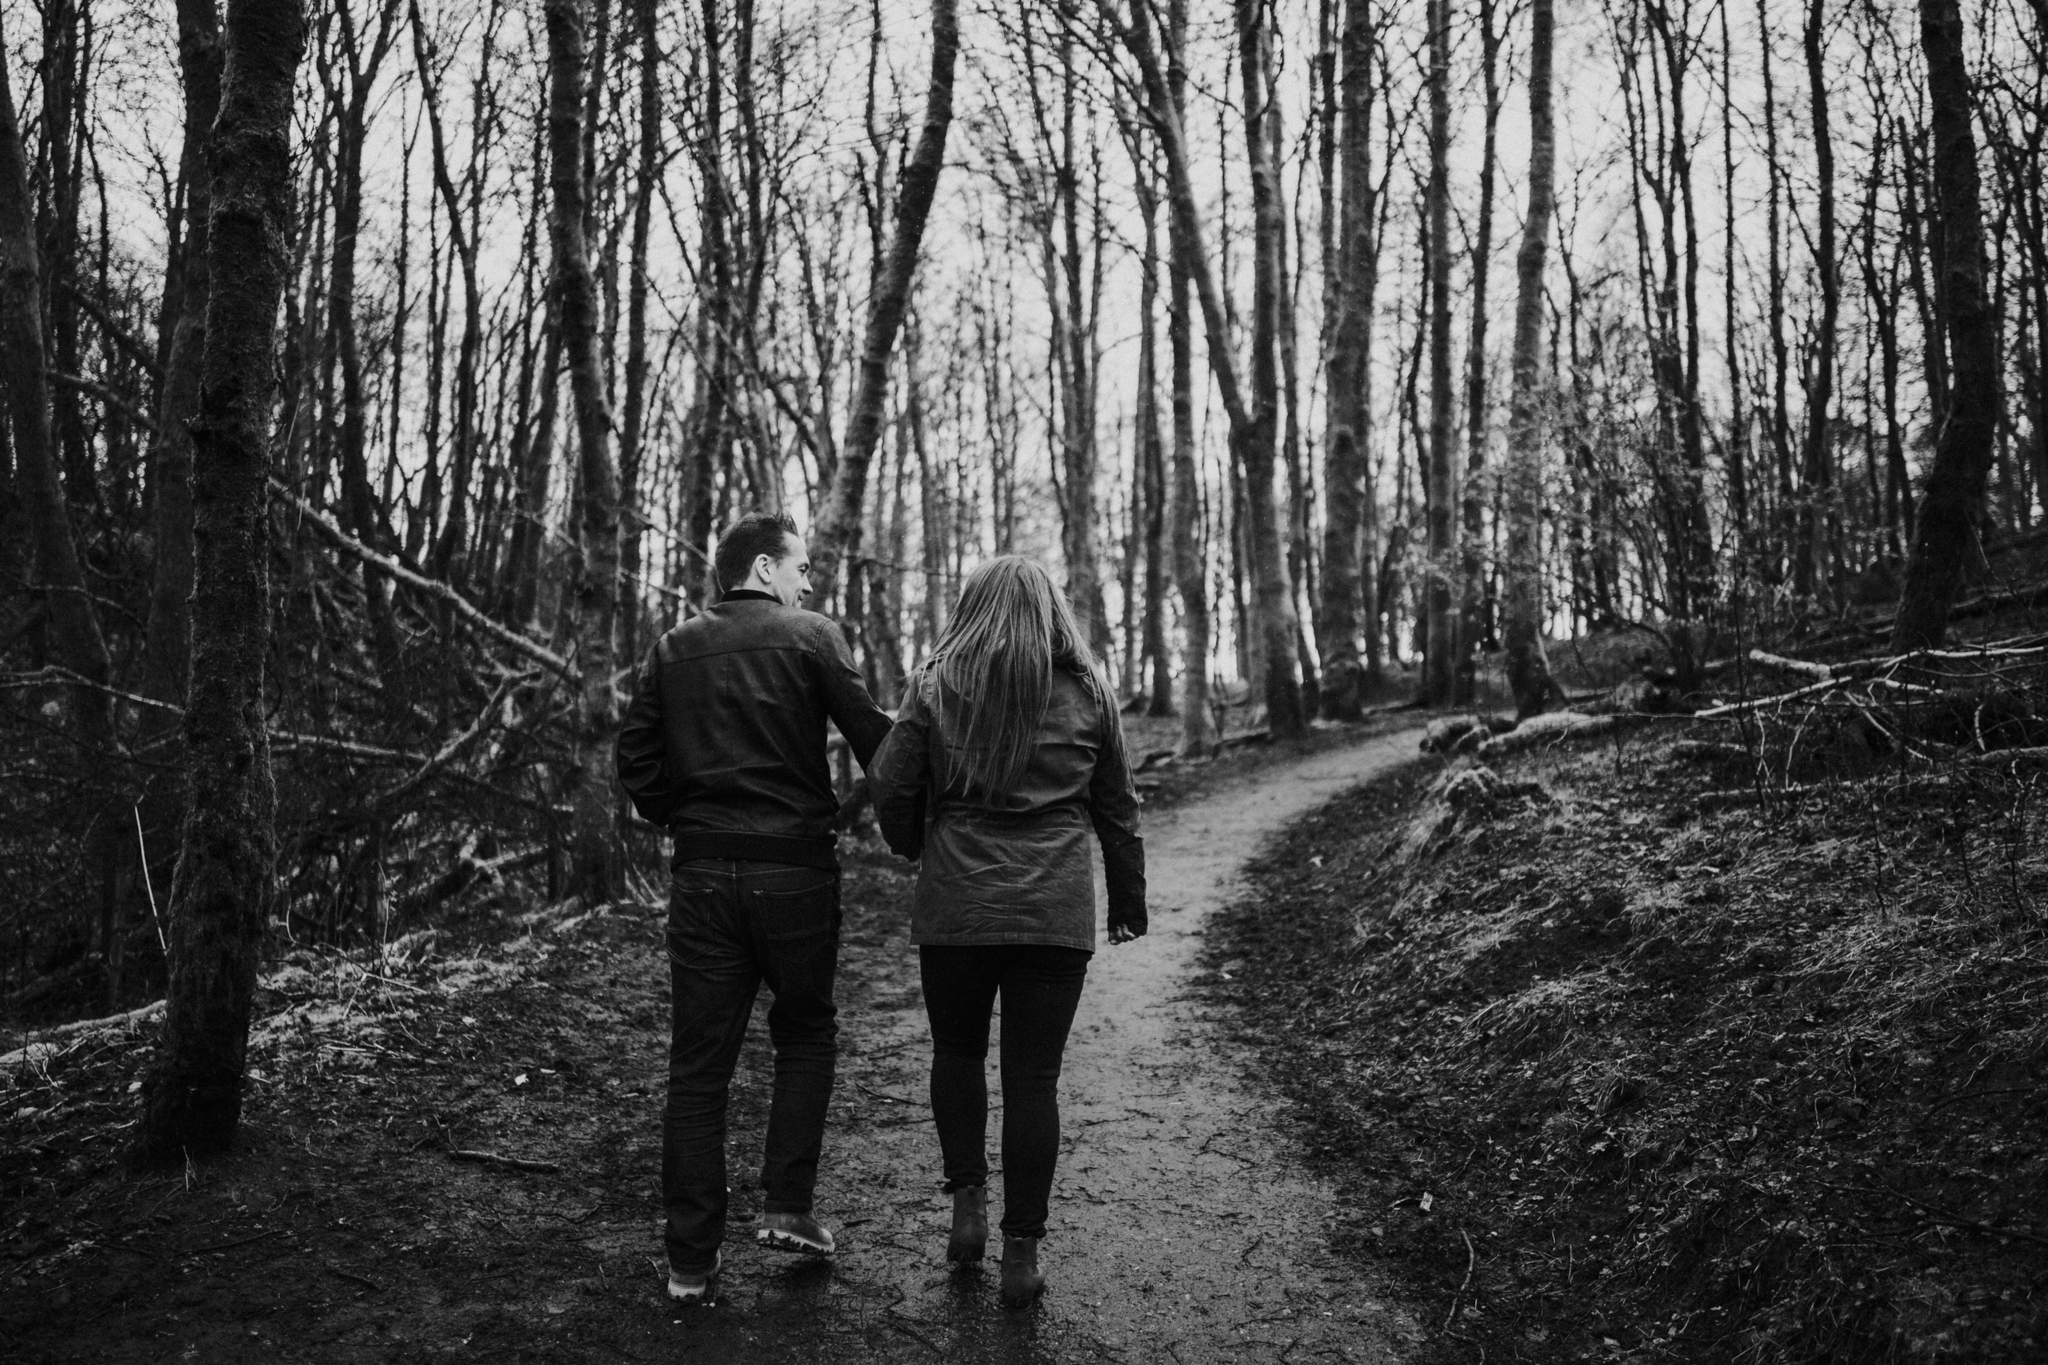 The couple is walking in the Mugdock Country Park